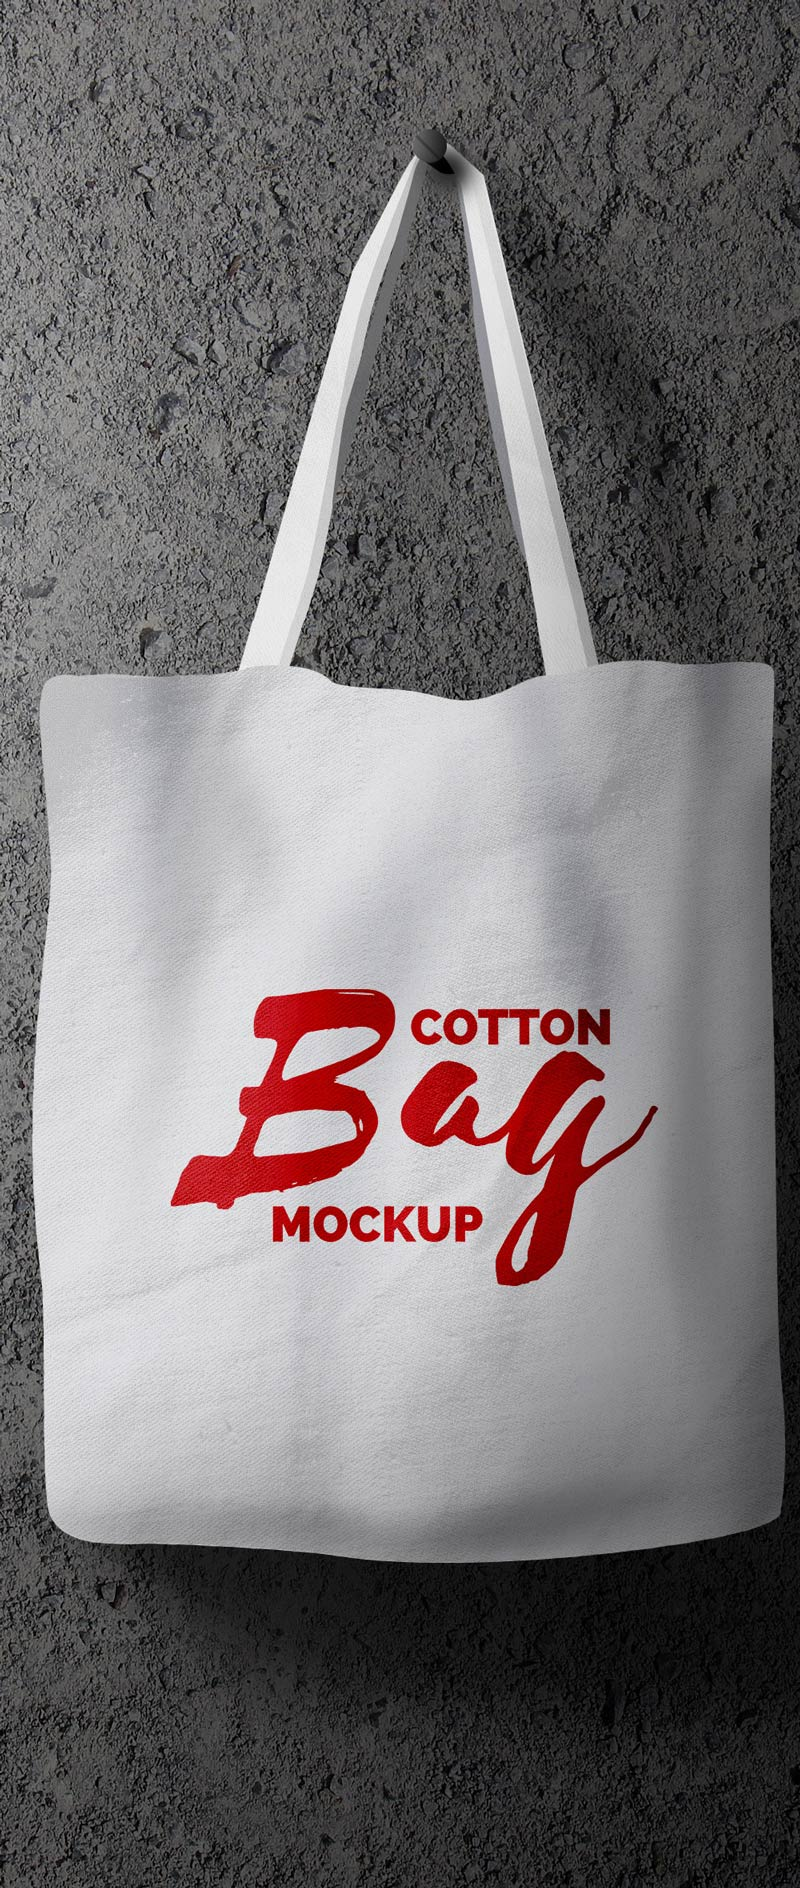 Hanging Cotton Bag Mockup Free PSD